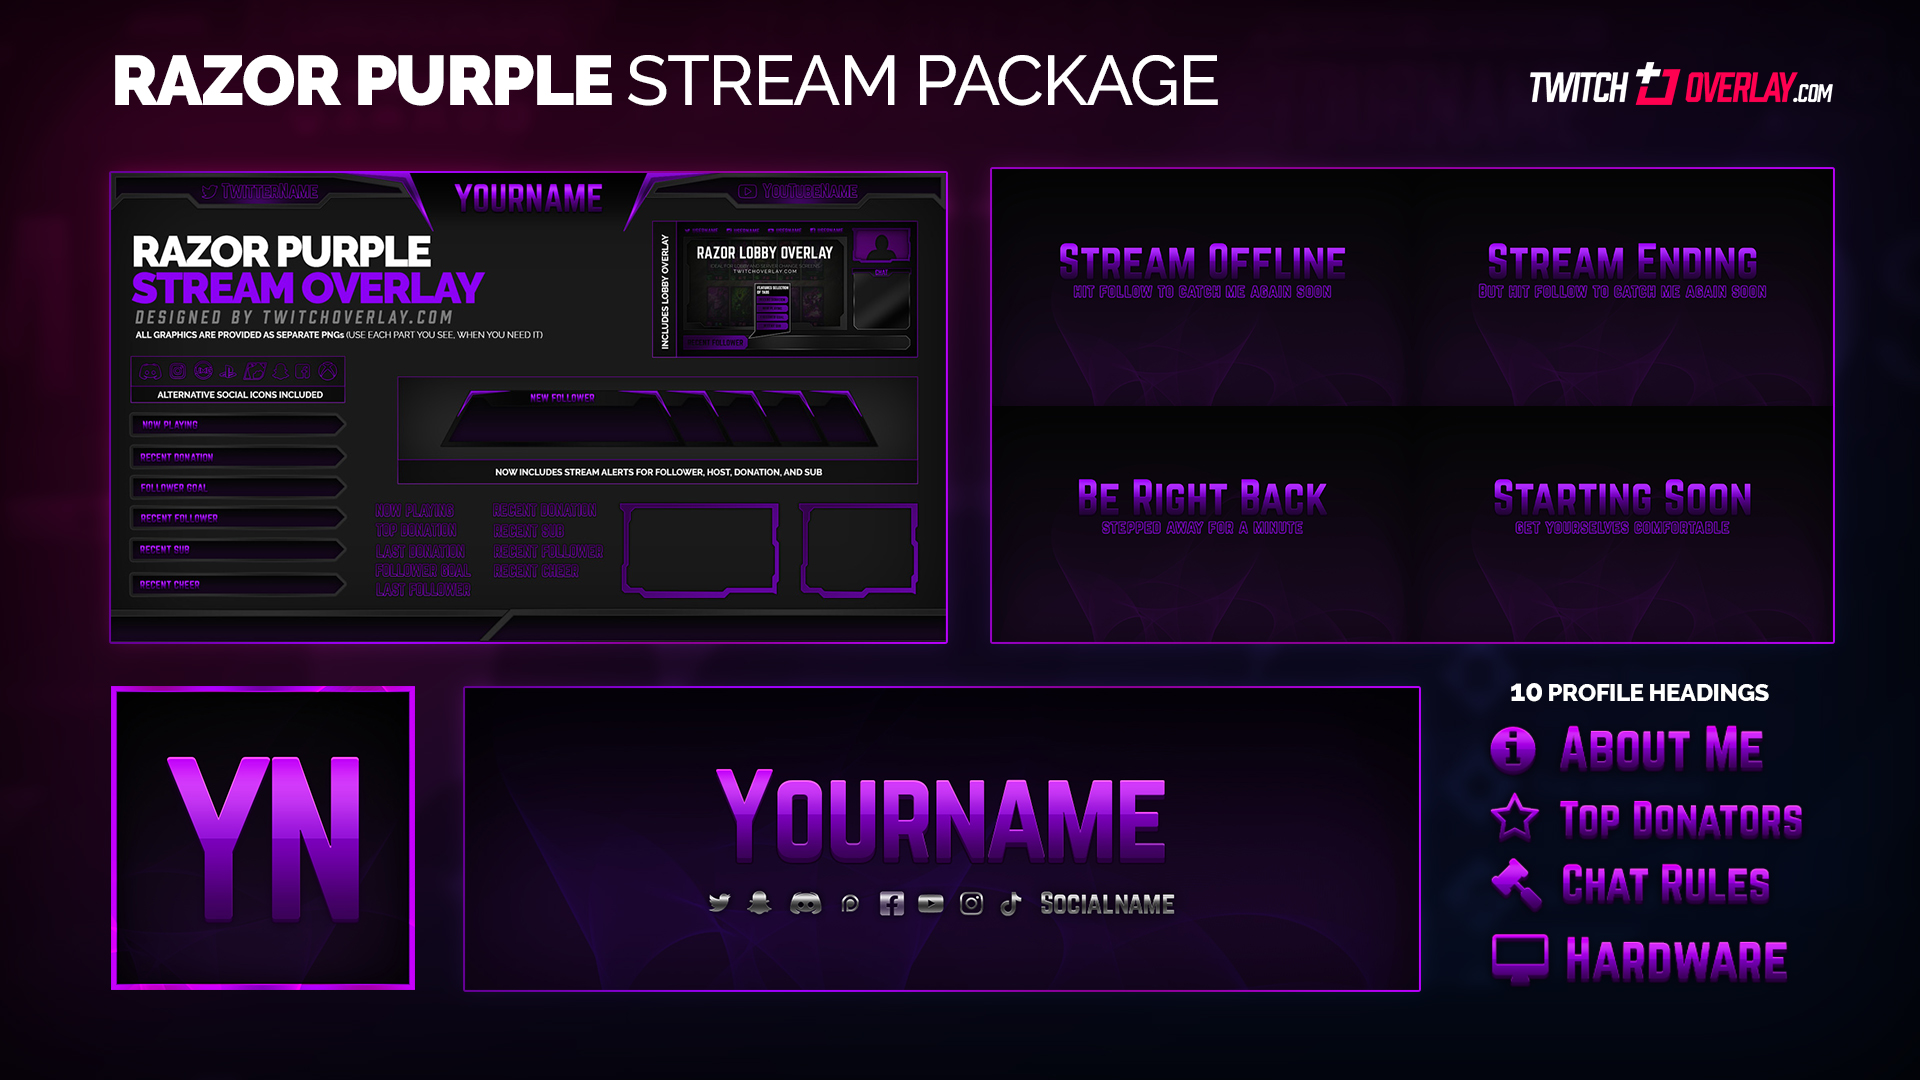 purple stream package - Twitch Overlay